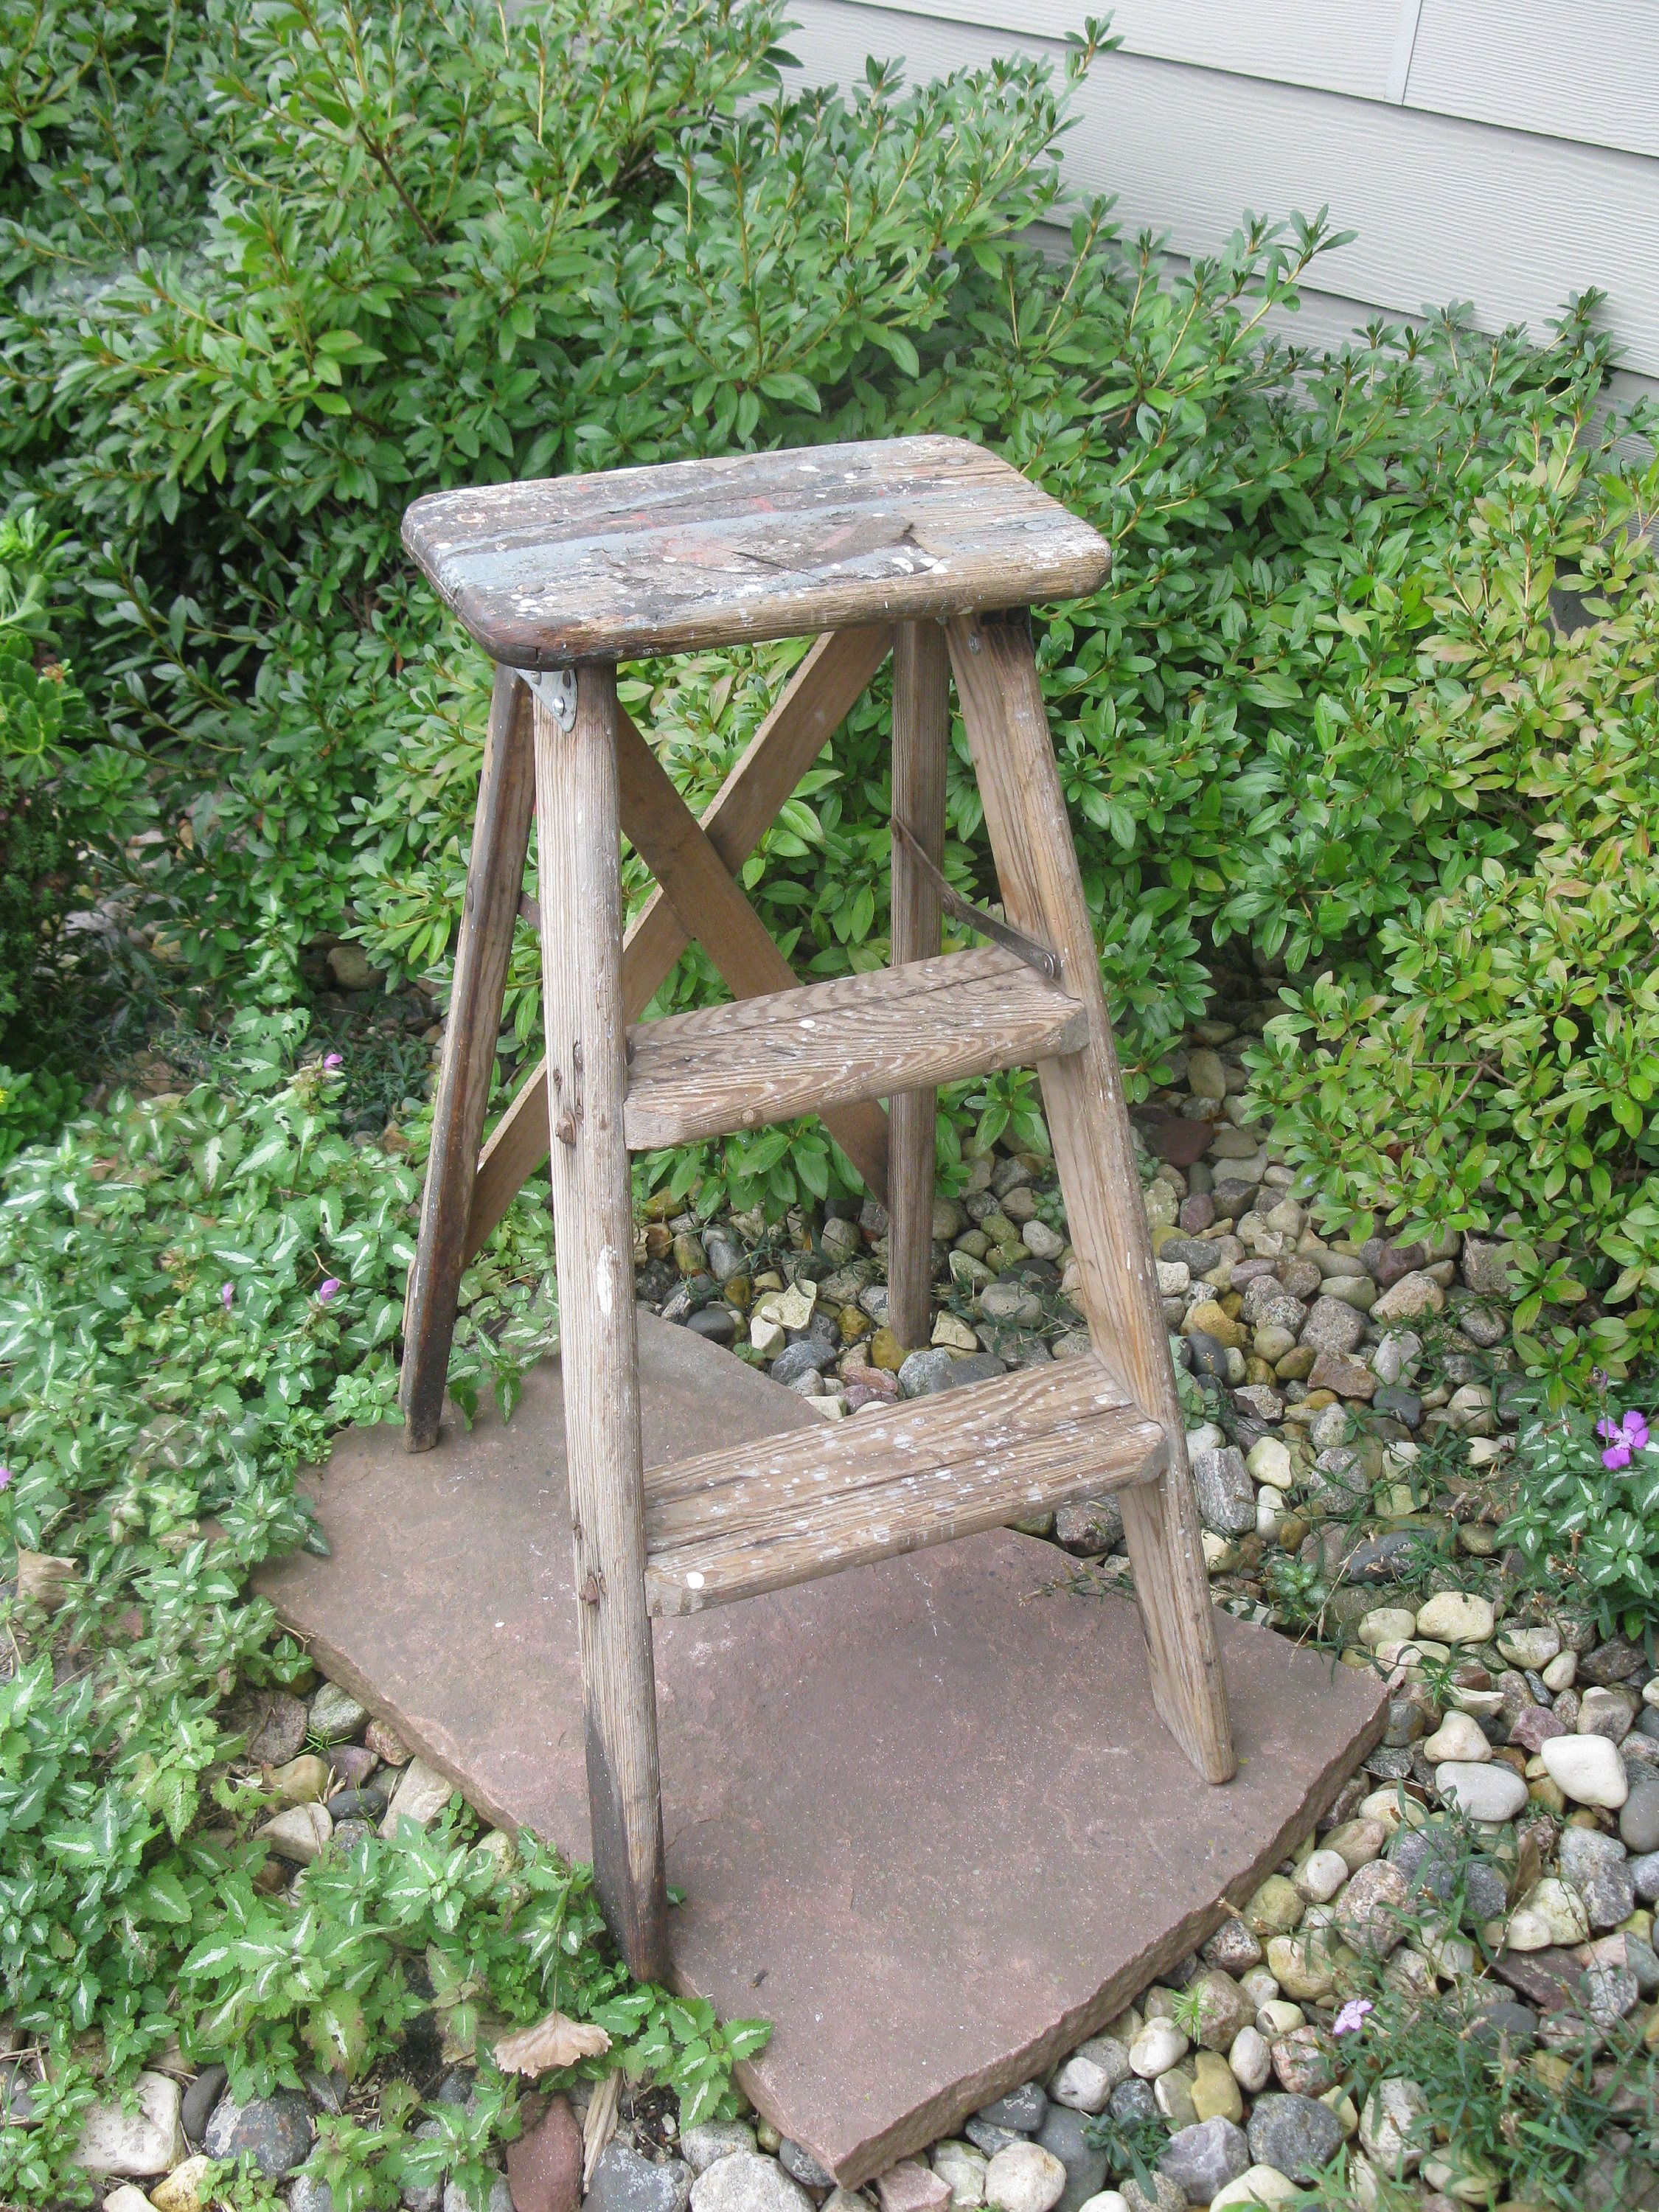 Shabby Wooden Step Ladder Step Stool Folding Ladder Plant Stand Rustic Vintage Primitive Wood Step Ladder Porch D Wooden Steps Step Ladders Wood Steps